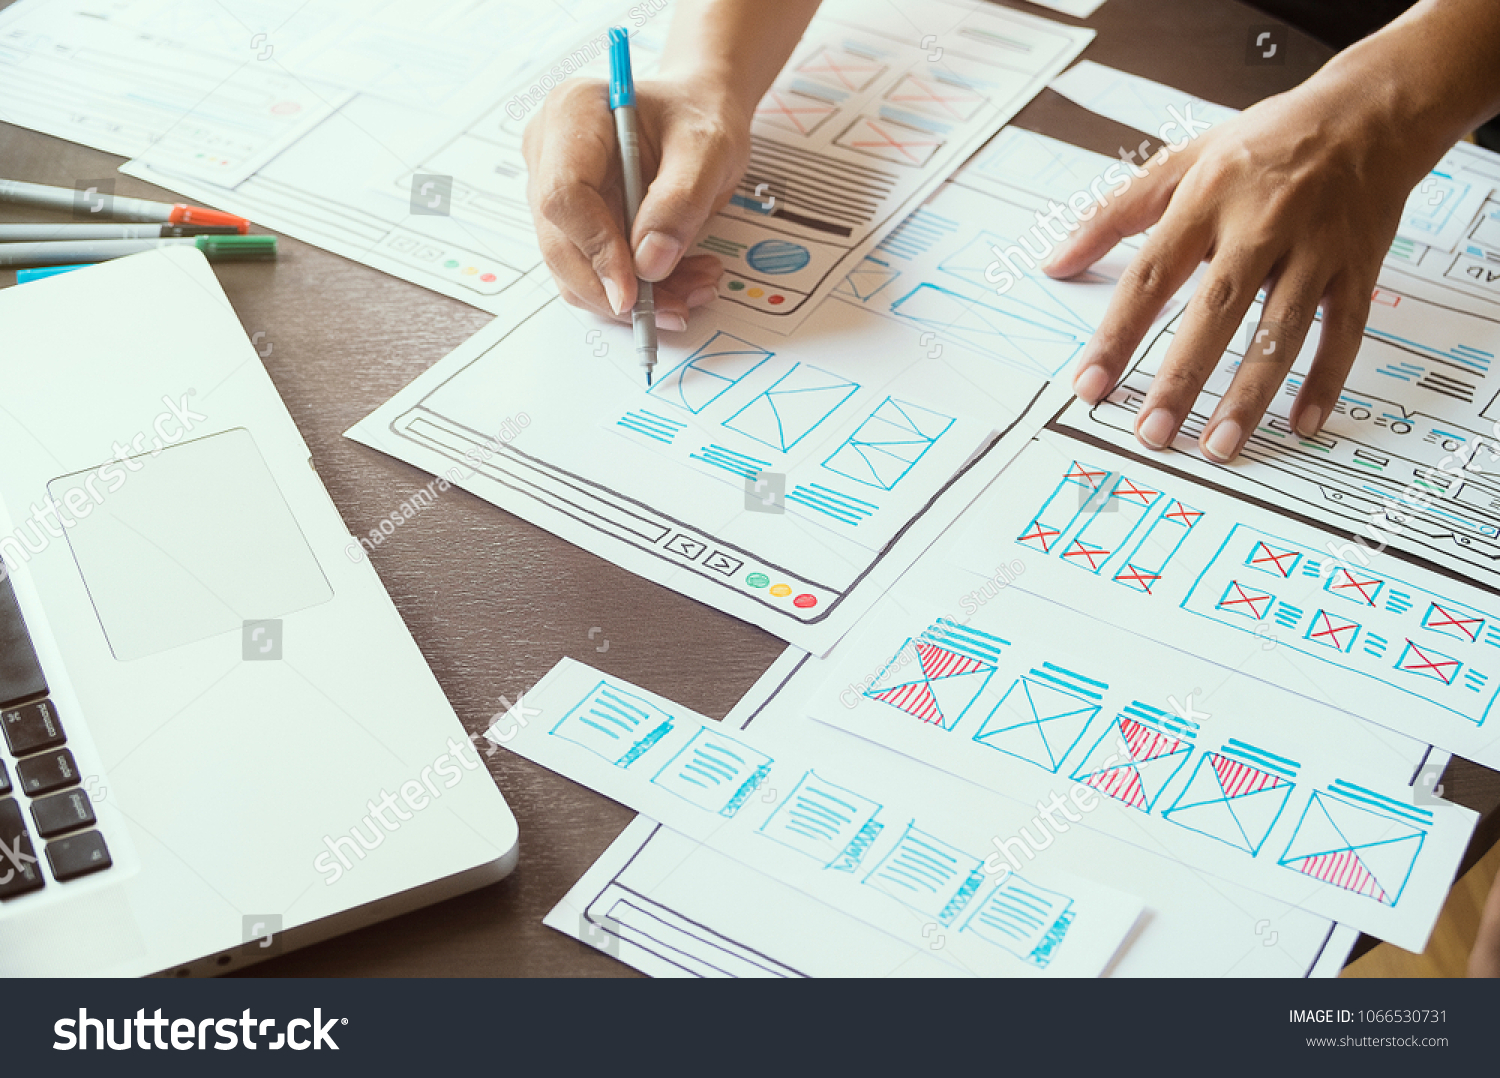 Website designer design development sketch drawing wireframe internet planning creativity editor ideas layout template content